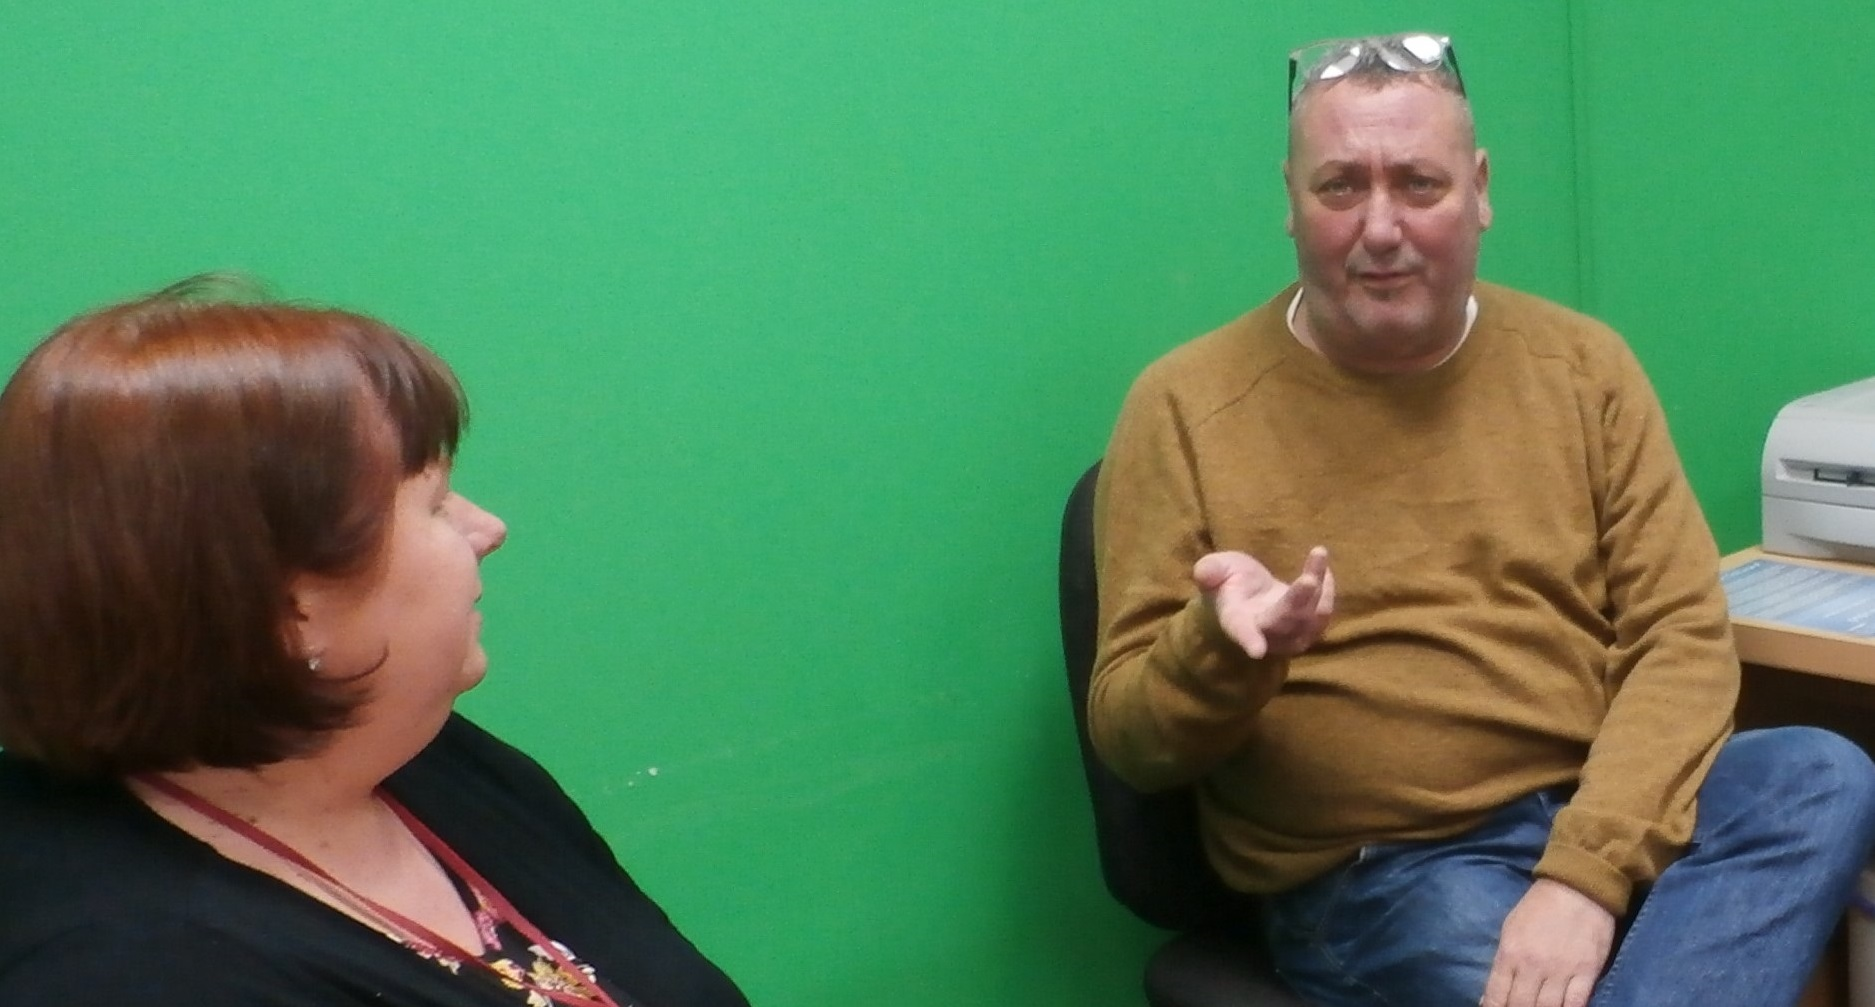 Interview between Libby and Innes